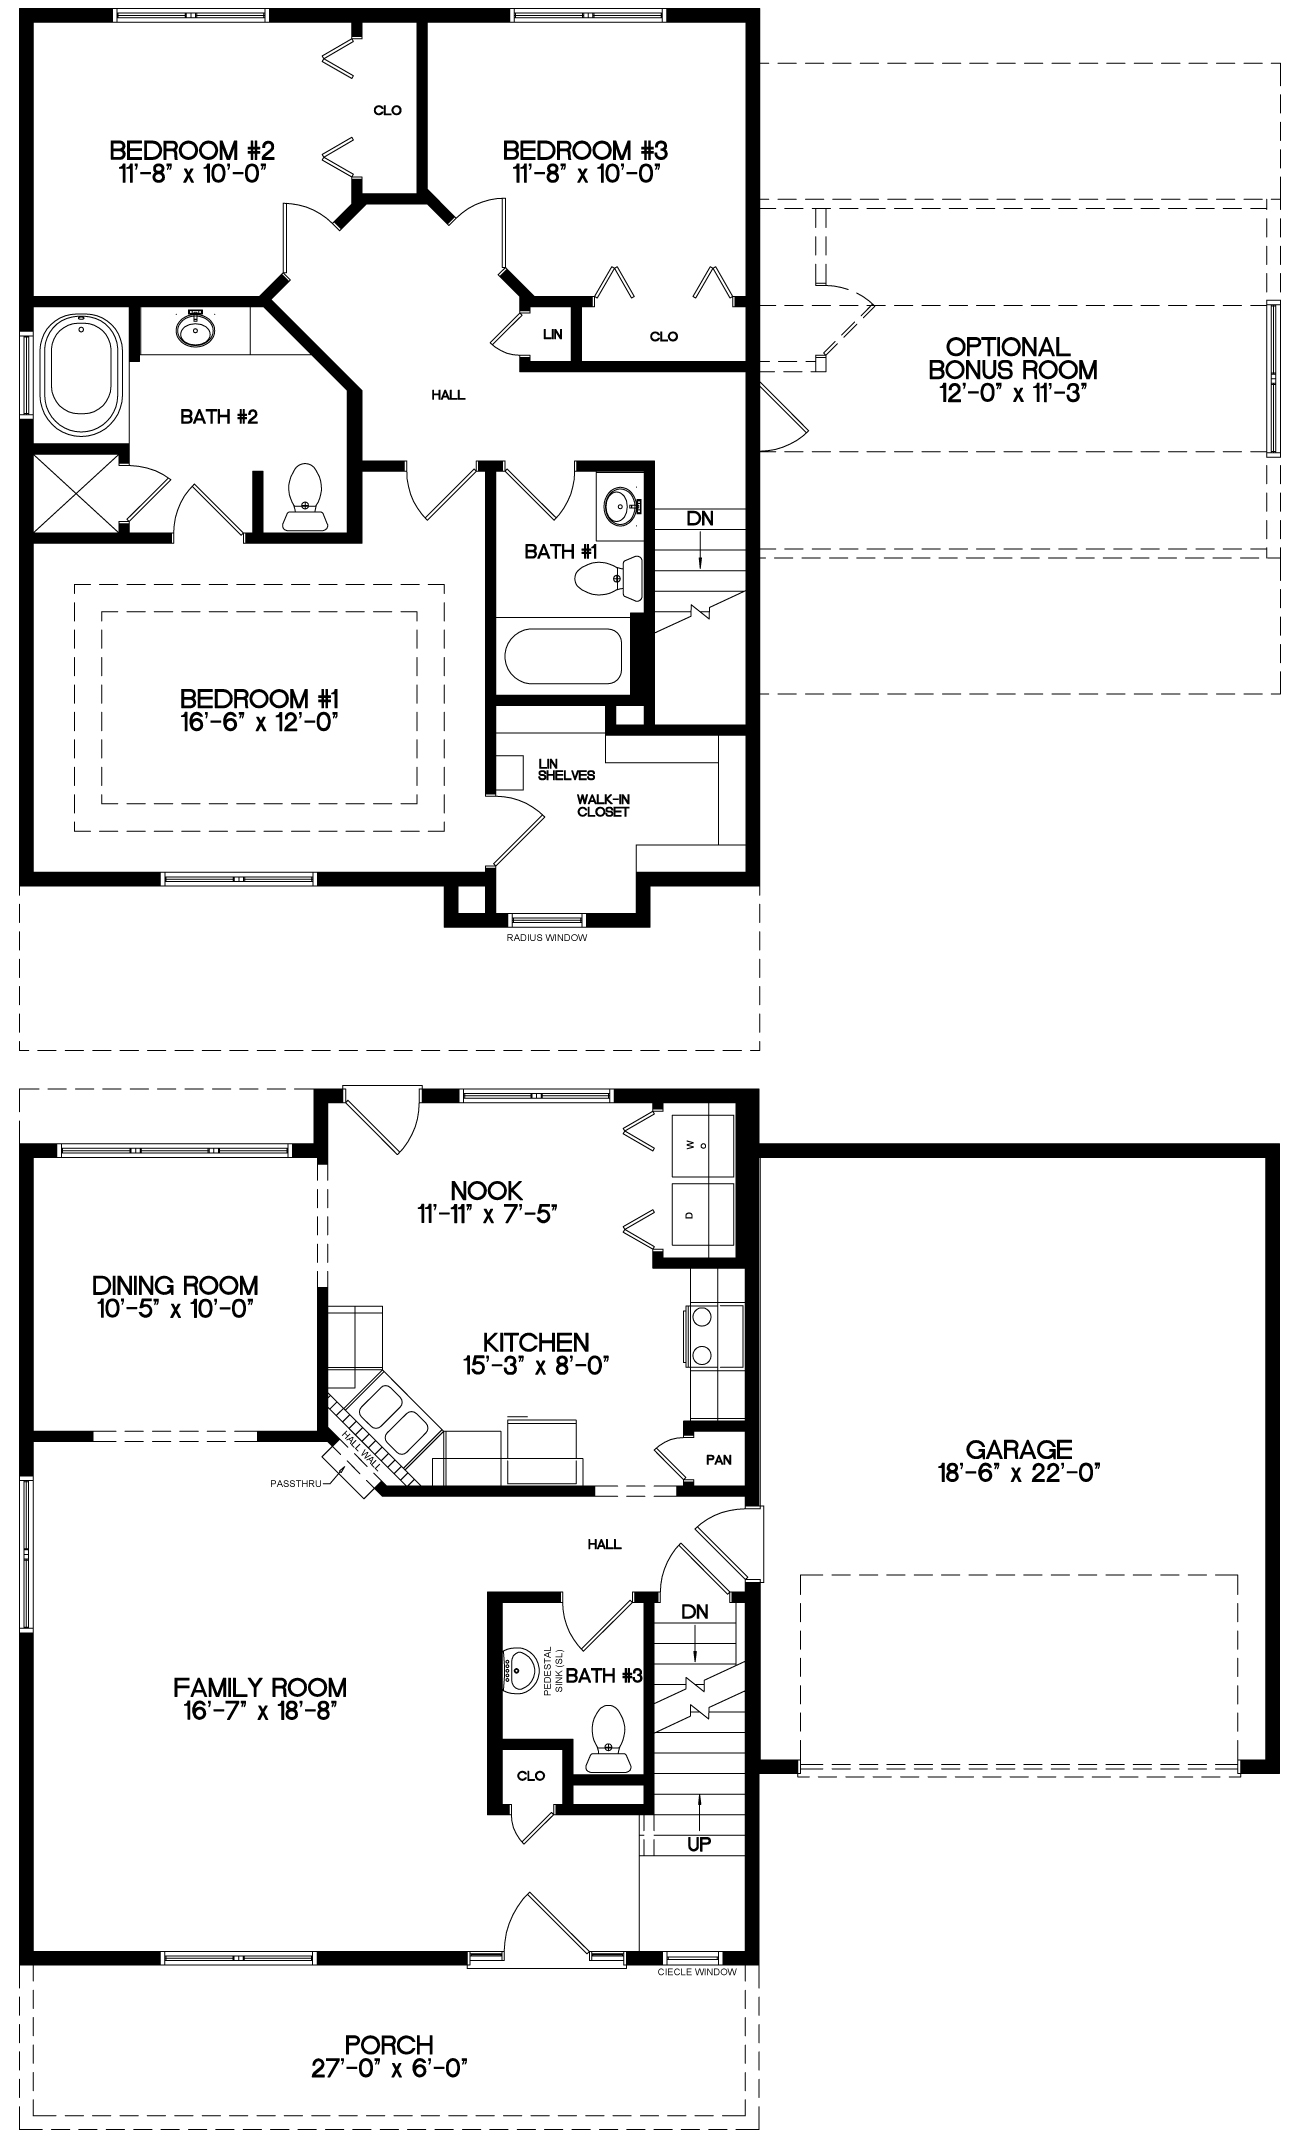 The Pinecrest Floor Plan